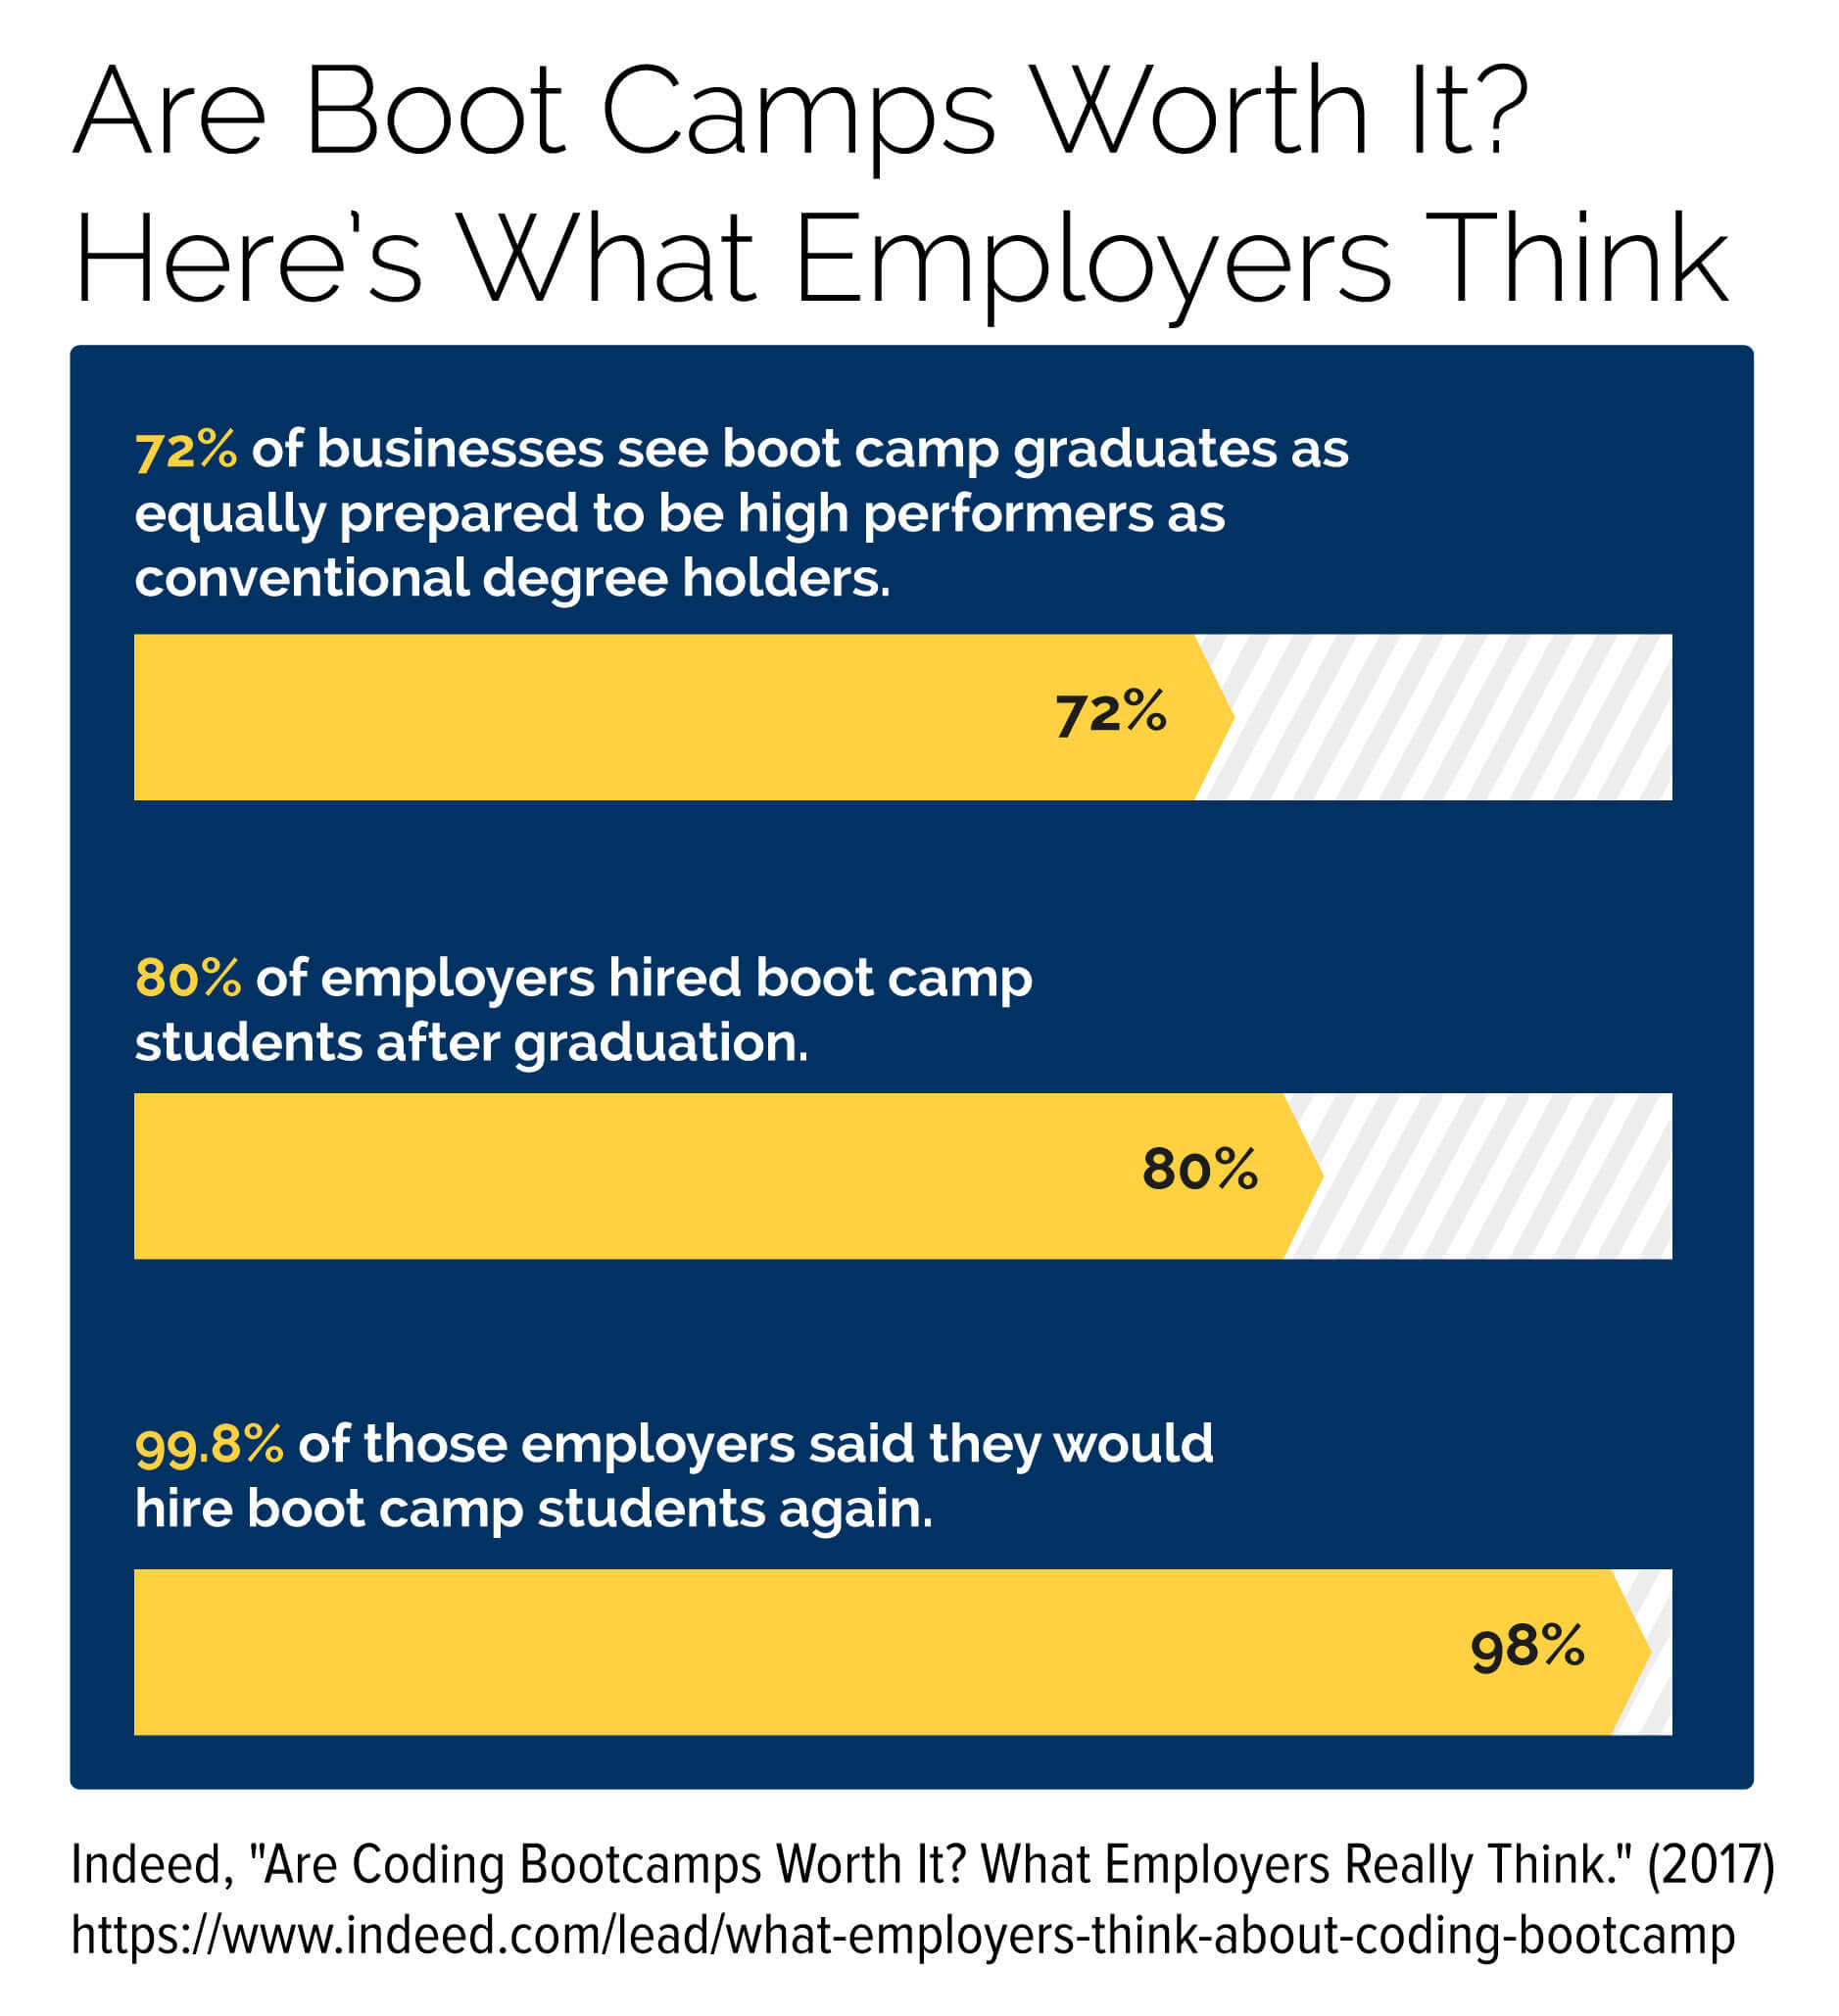 Data that shows what employers think of boot camp graduates